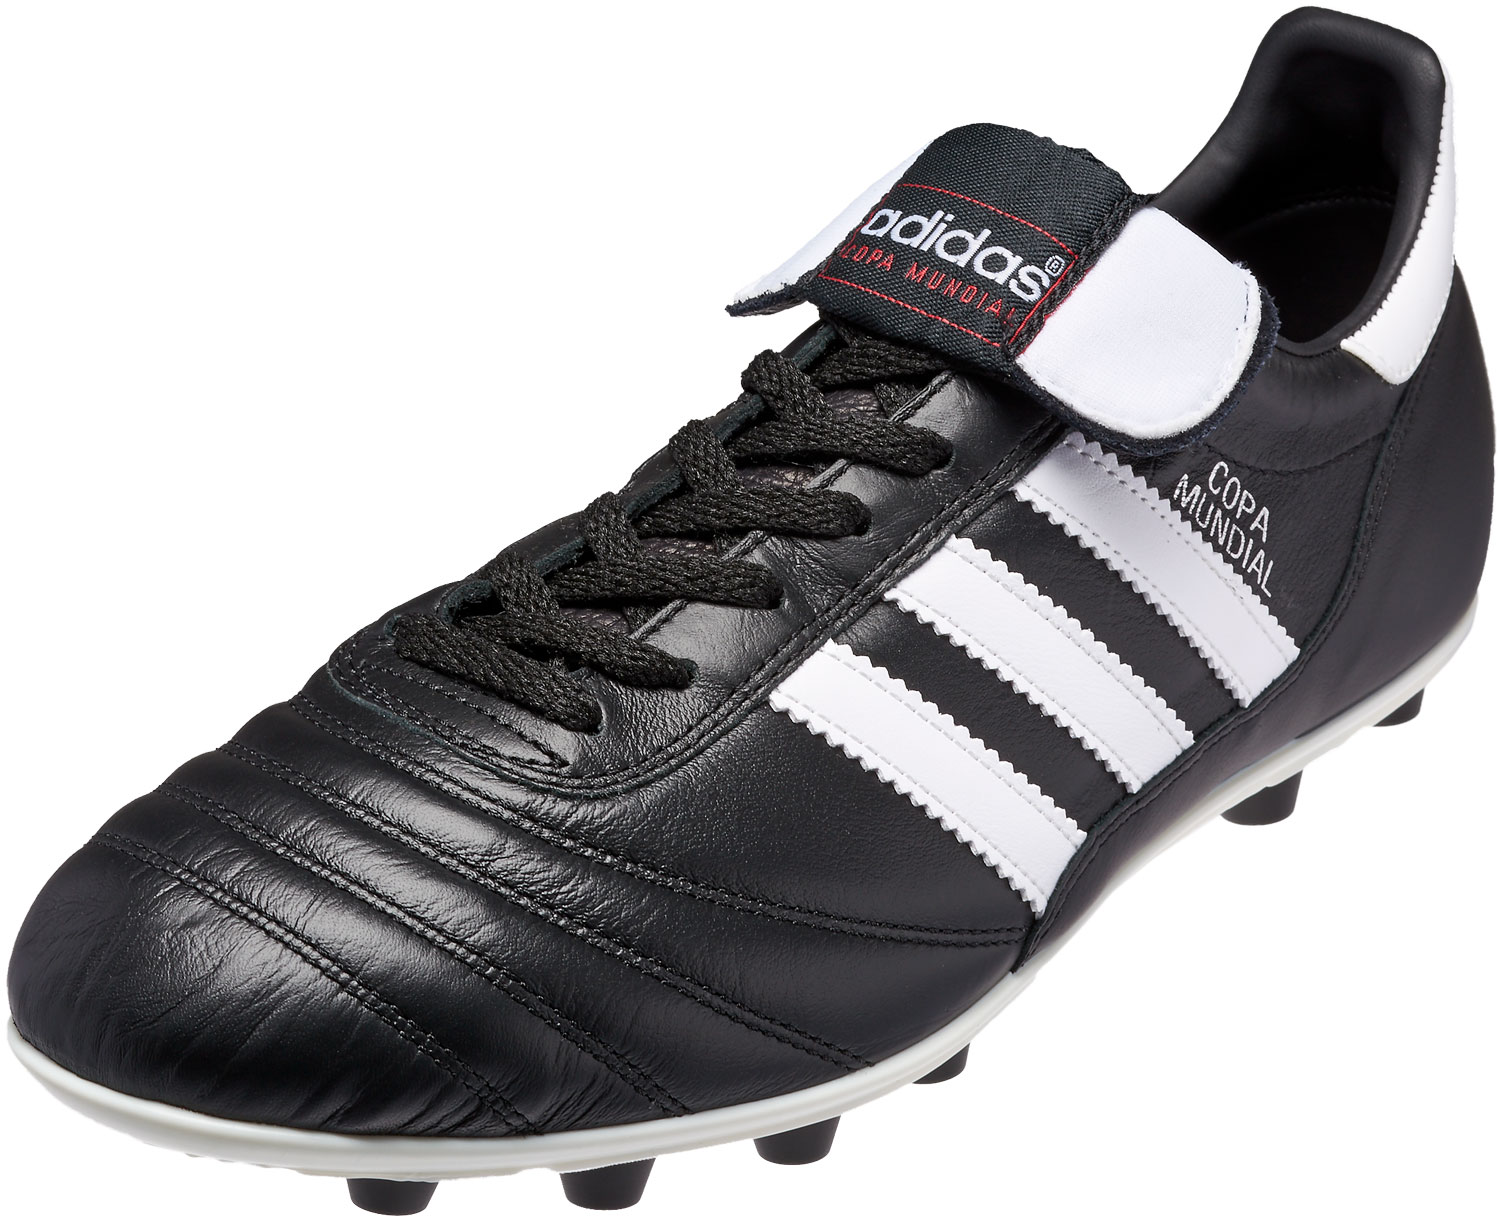 low priced 2f2c4 b3ba1 adidas Copa Mundial FG – Black White